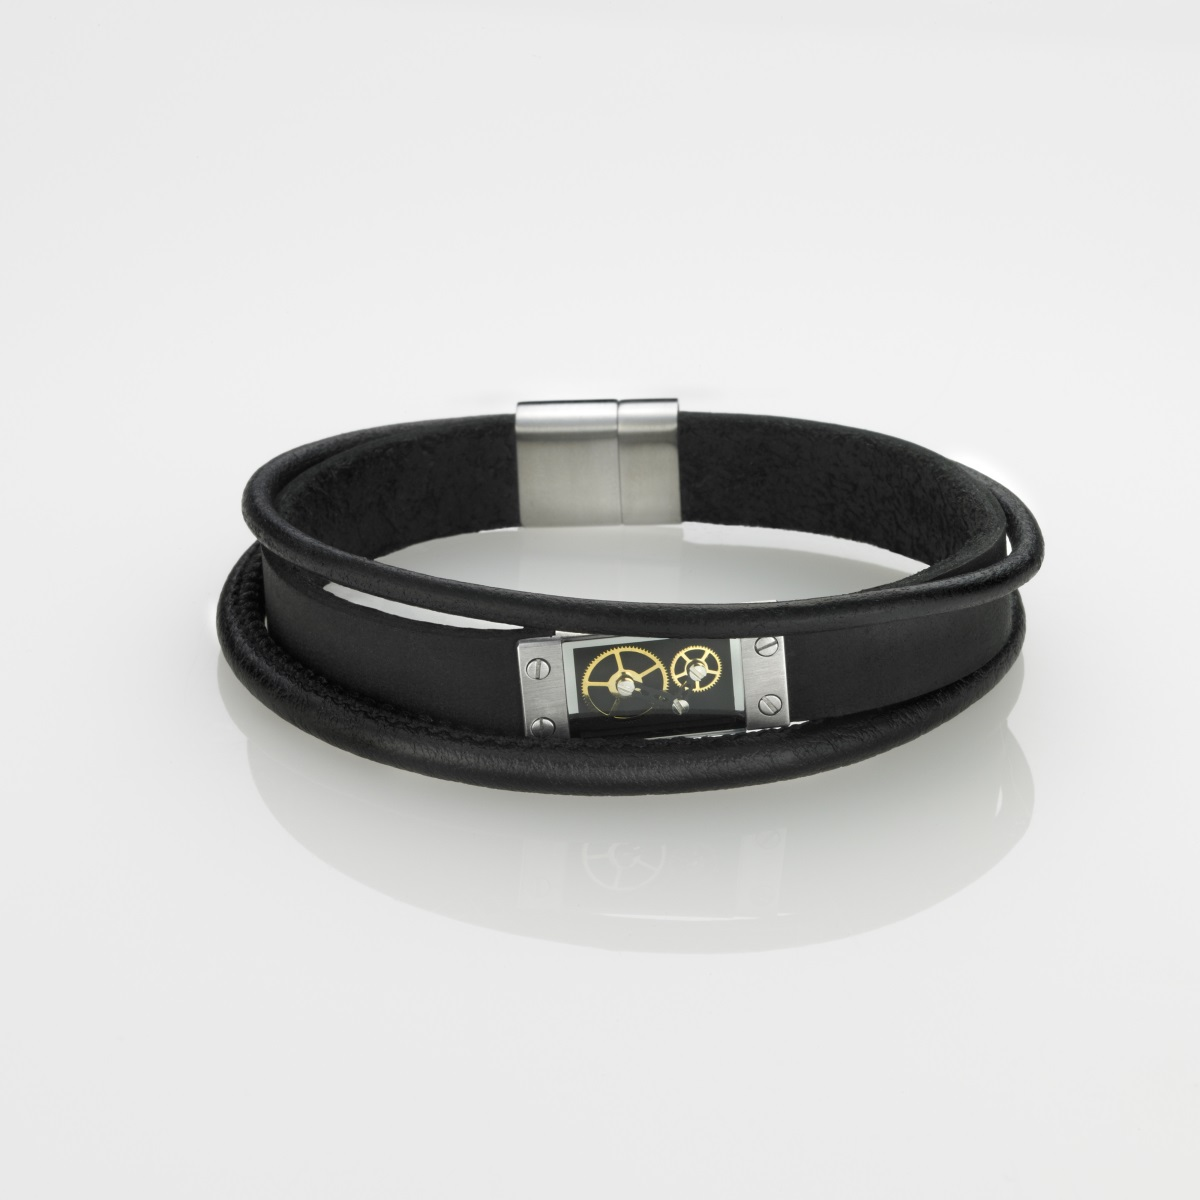 STORM London Cog Leather Bracelet - Black